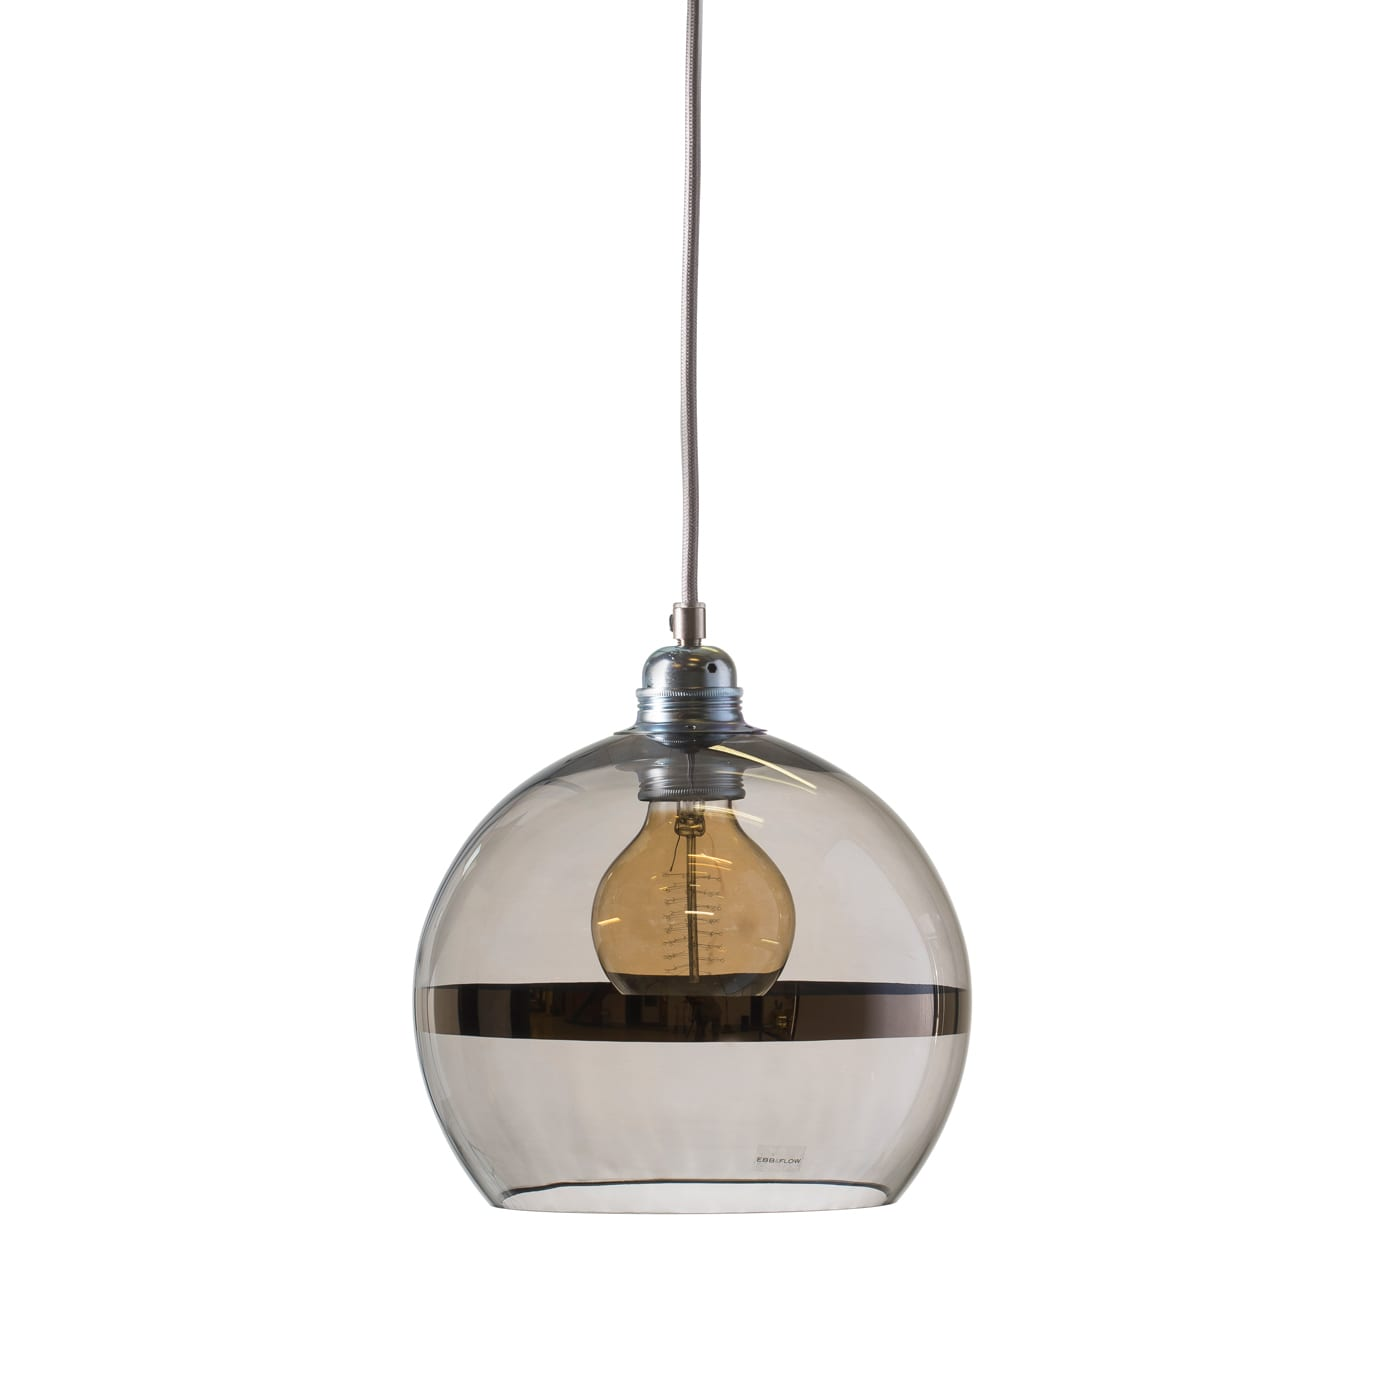 Rowan pendant lamp, platinum stripe on grey, 22cm